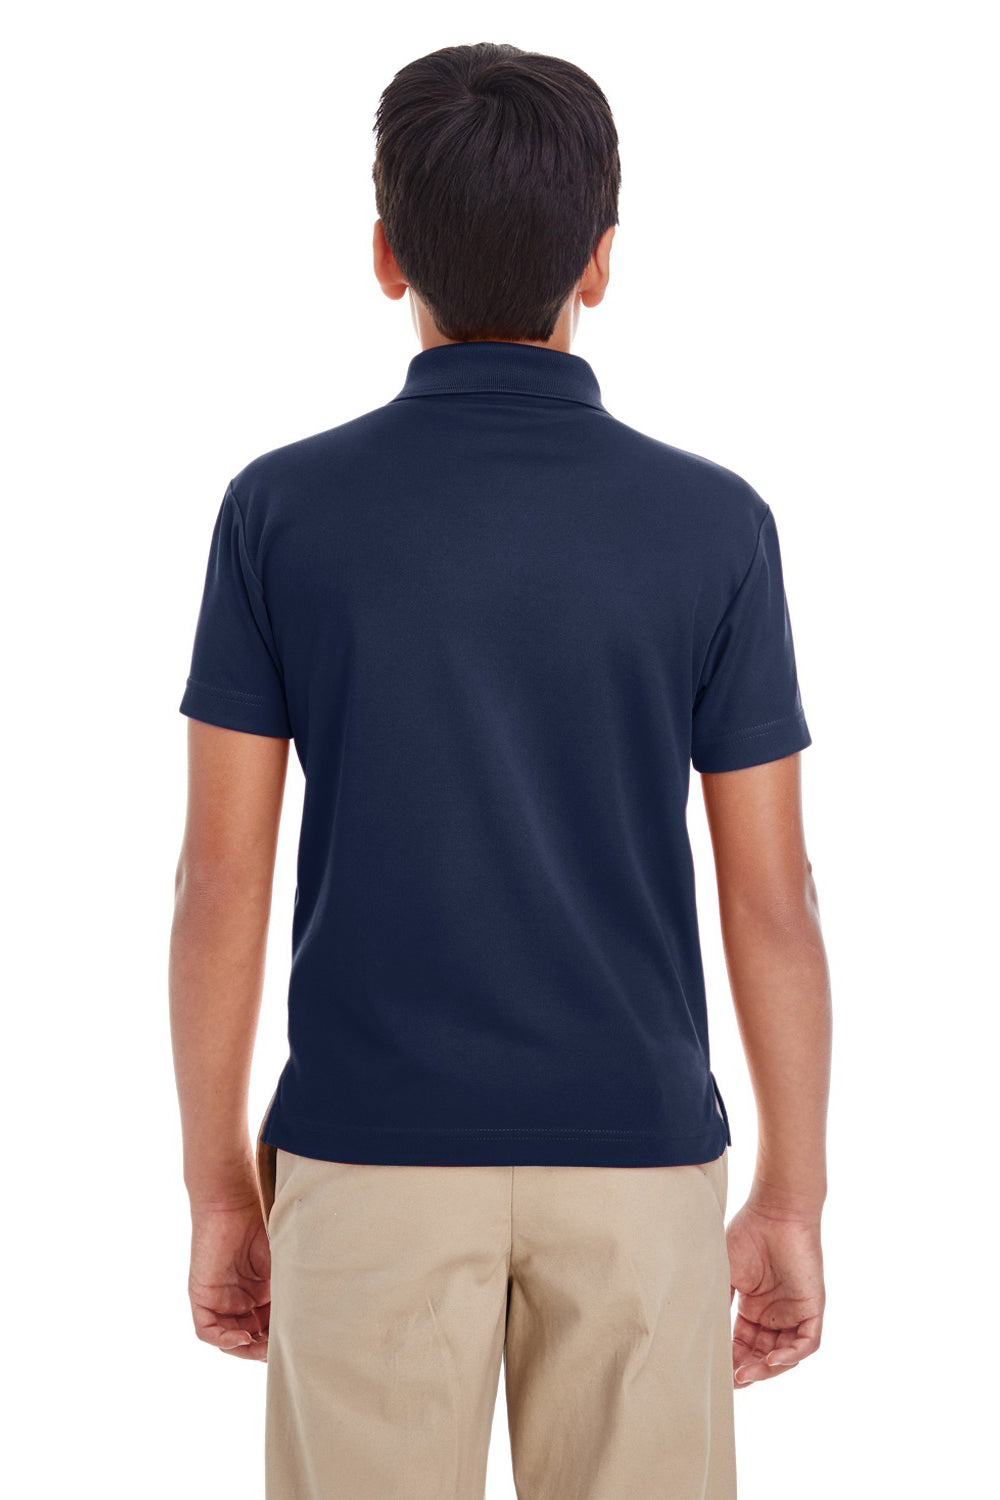 Core 365 88181Y Youth Origin Performance Moisture Wicking Short Sleeve Polo Shirt Navy Blue Back